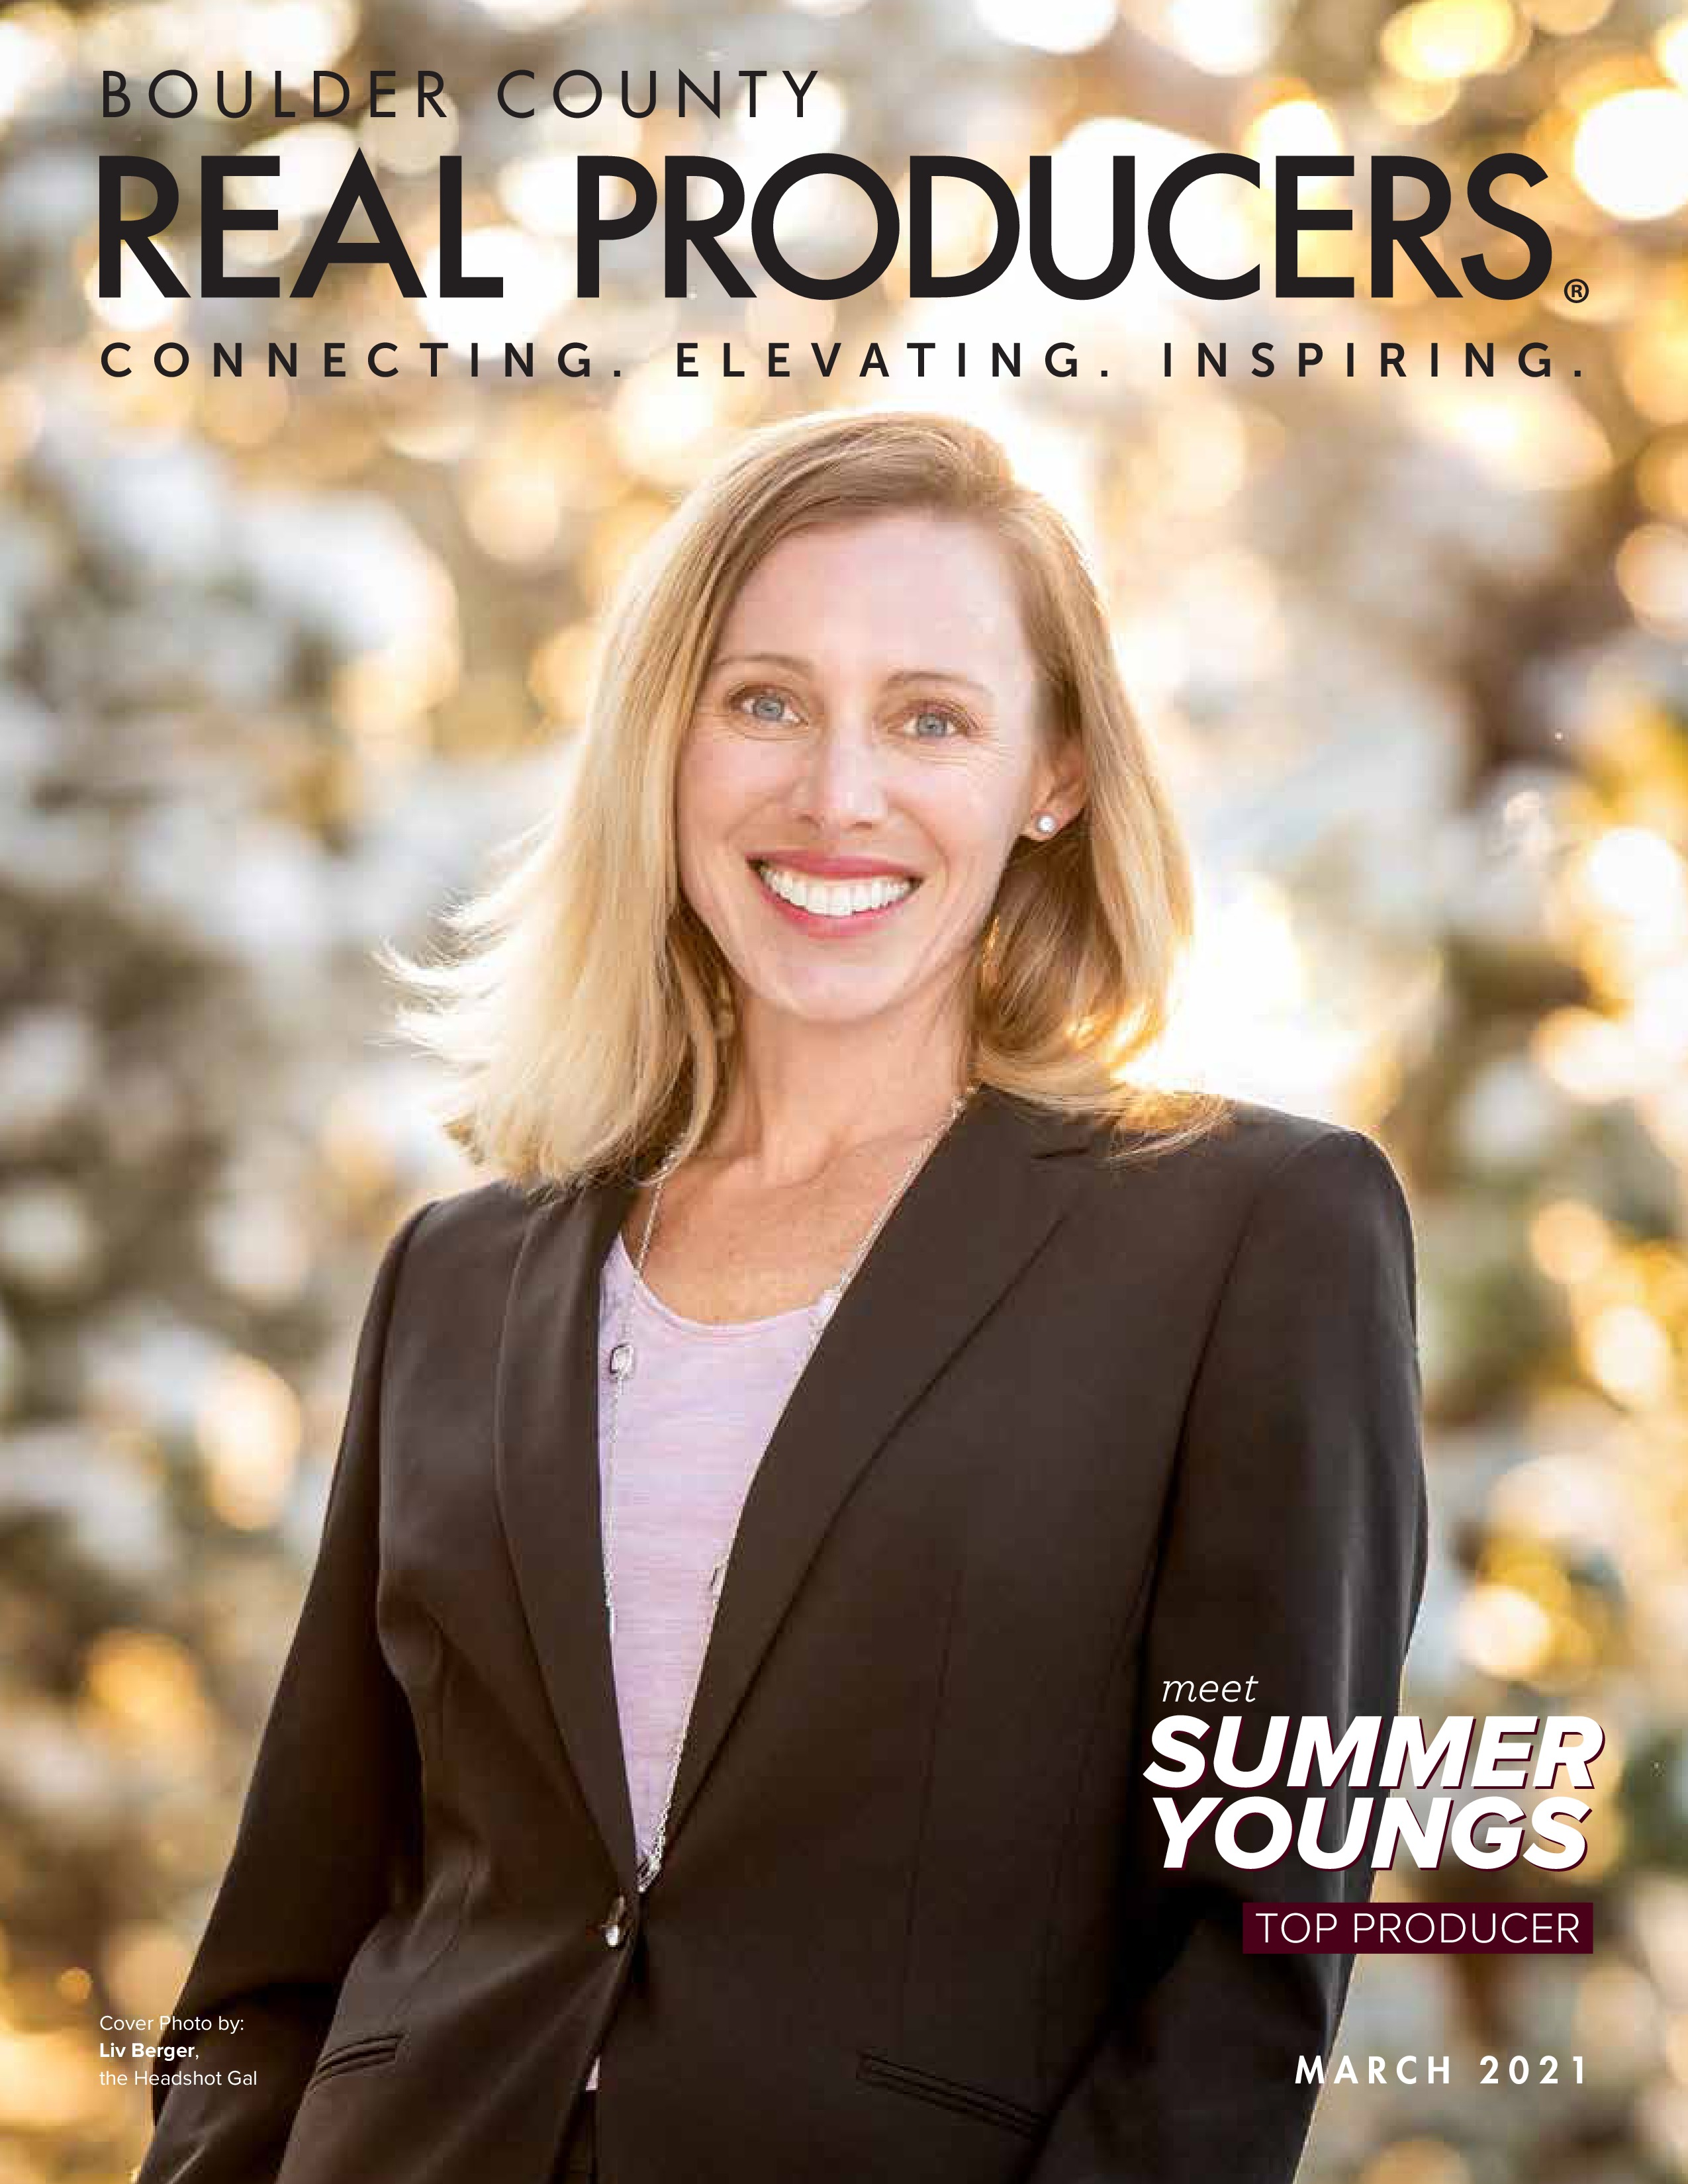 Boulder County Real Producers 2021-03-01